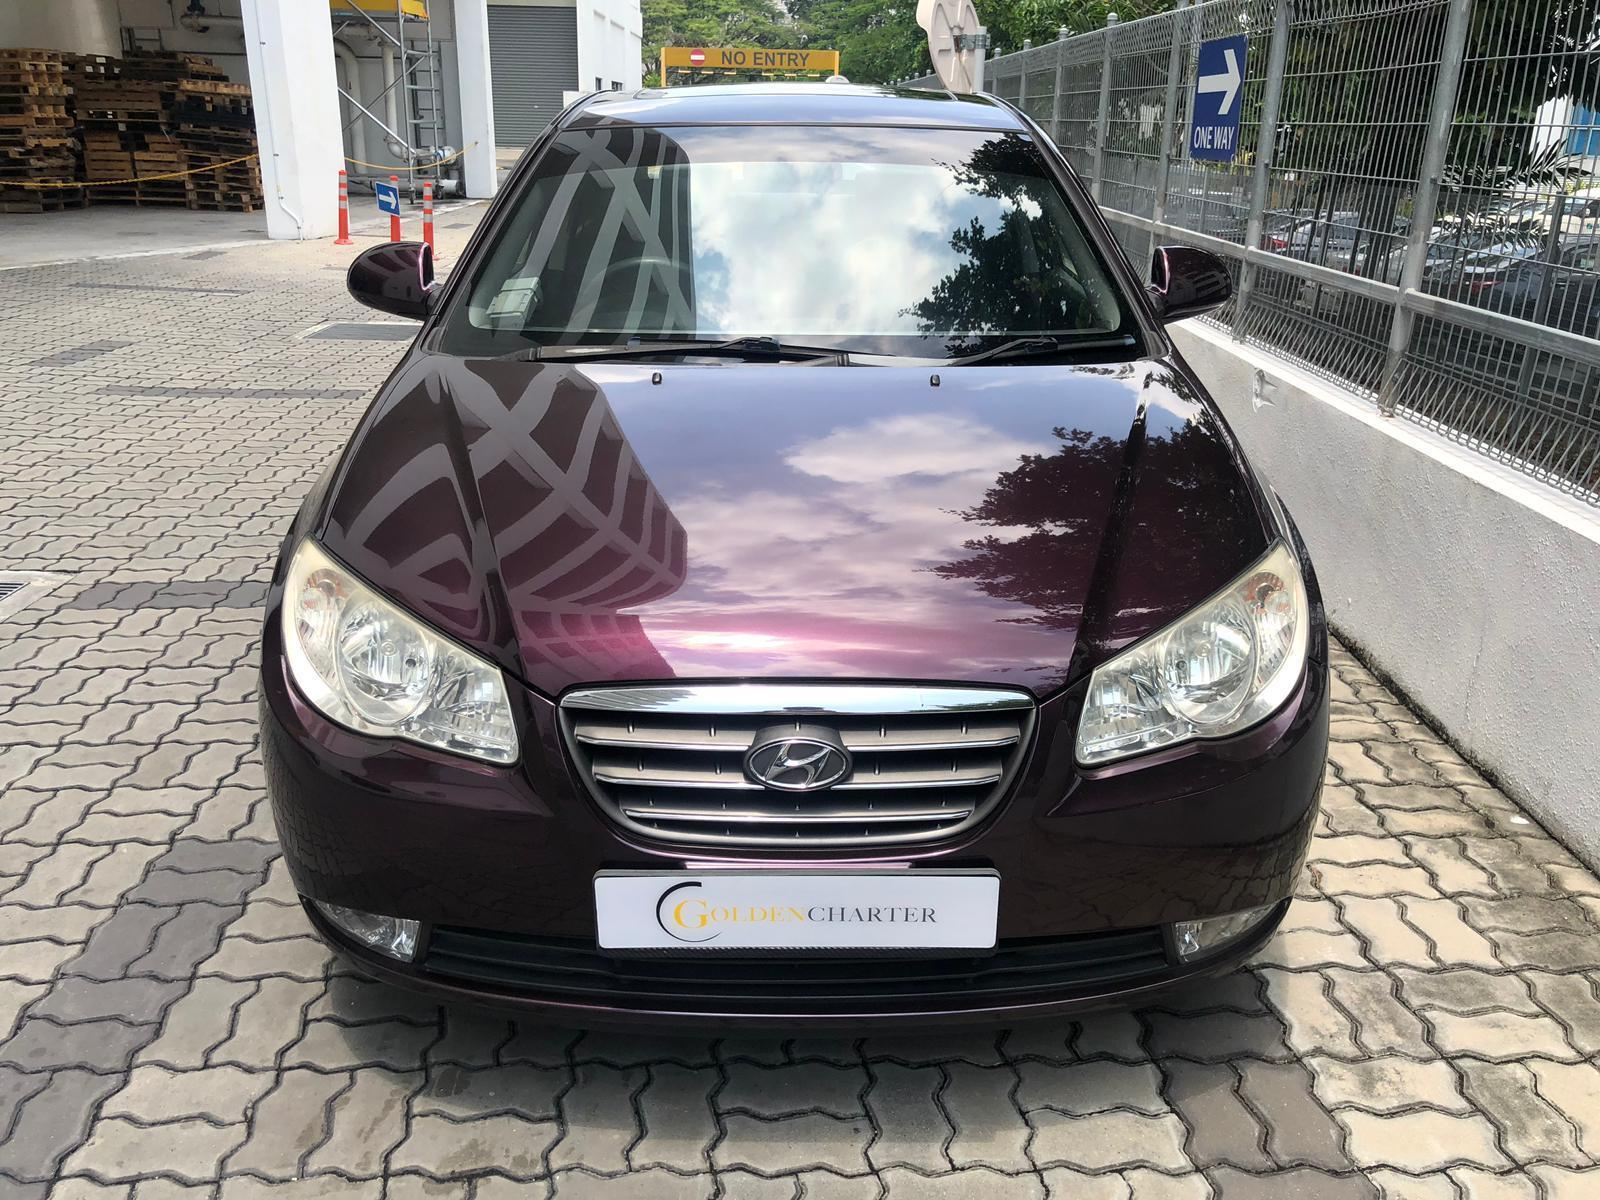 Hyundai Avante $47 Toyota Vios Wish Altis Car Axio Premio Allion Camry Estima Honda Jazz Fit Stream Civic Cars Hyundai Avante Mazda 3 2 For Rent Lease To Own Grab Rental Gojek Or Personal Use Low price and Cheap